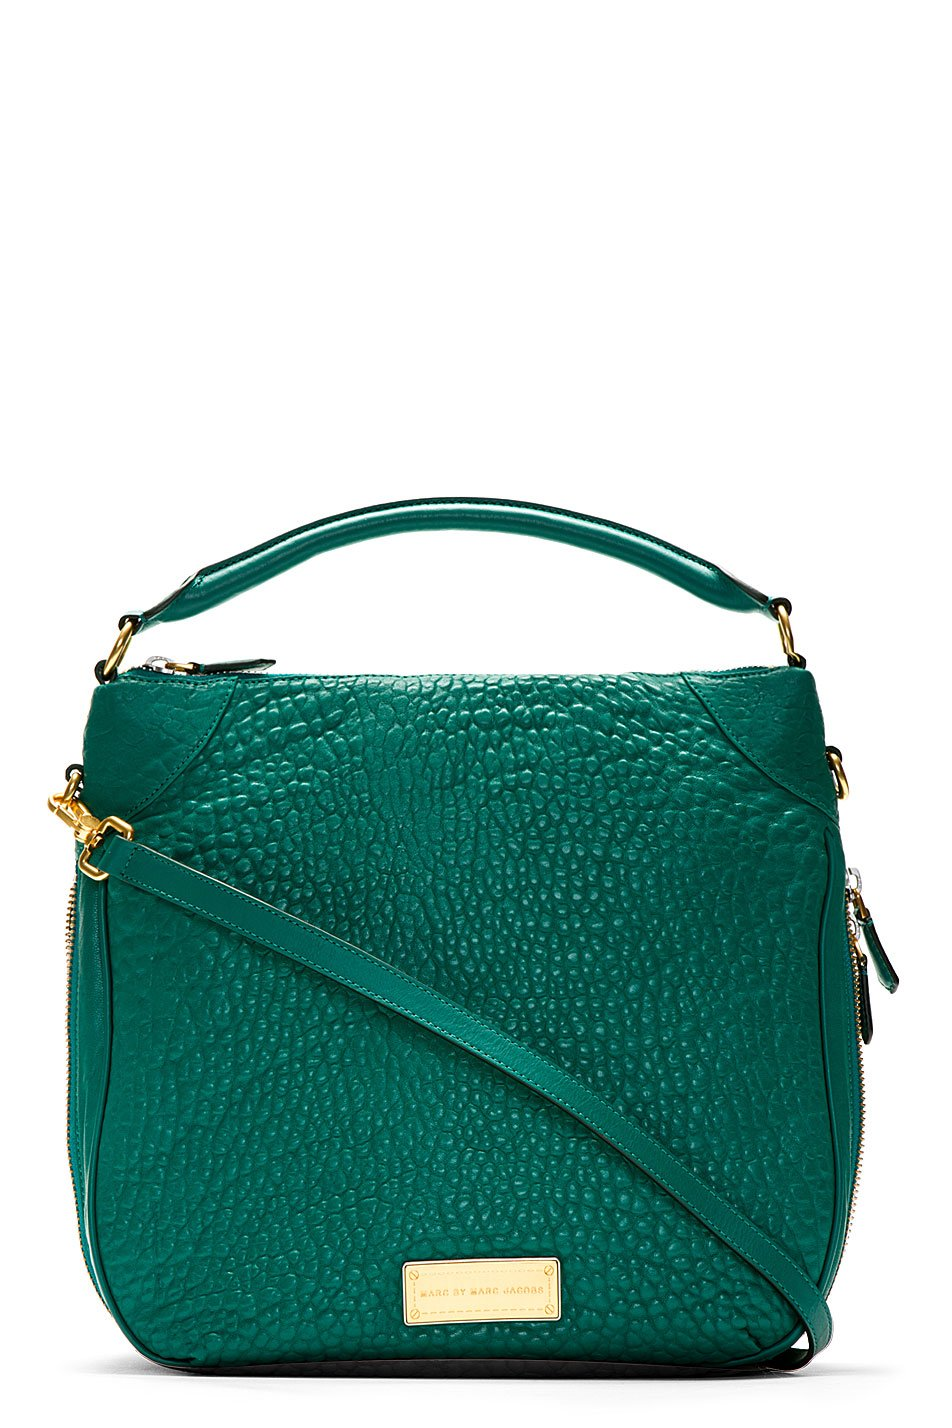 marc by marc jacobs green pebbled leather shoulder bag